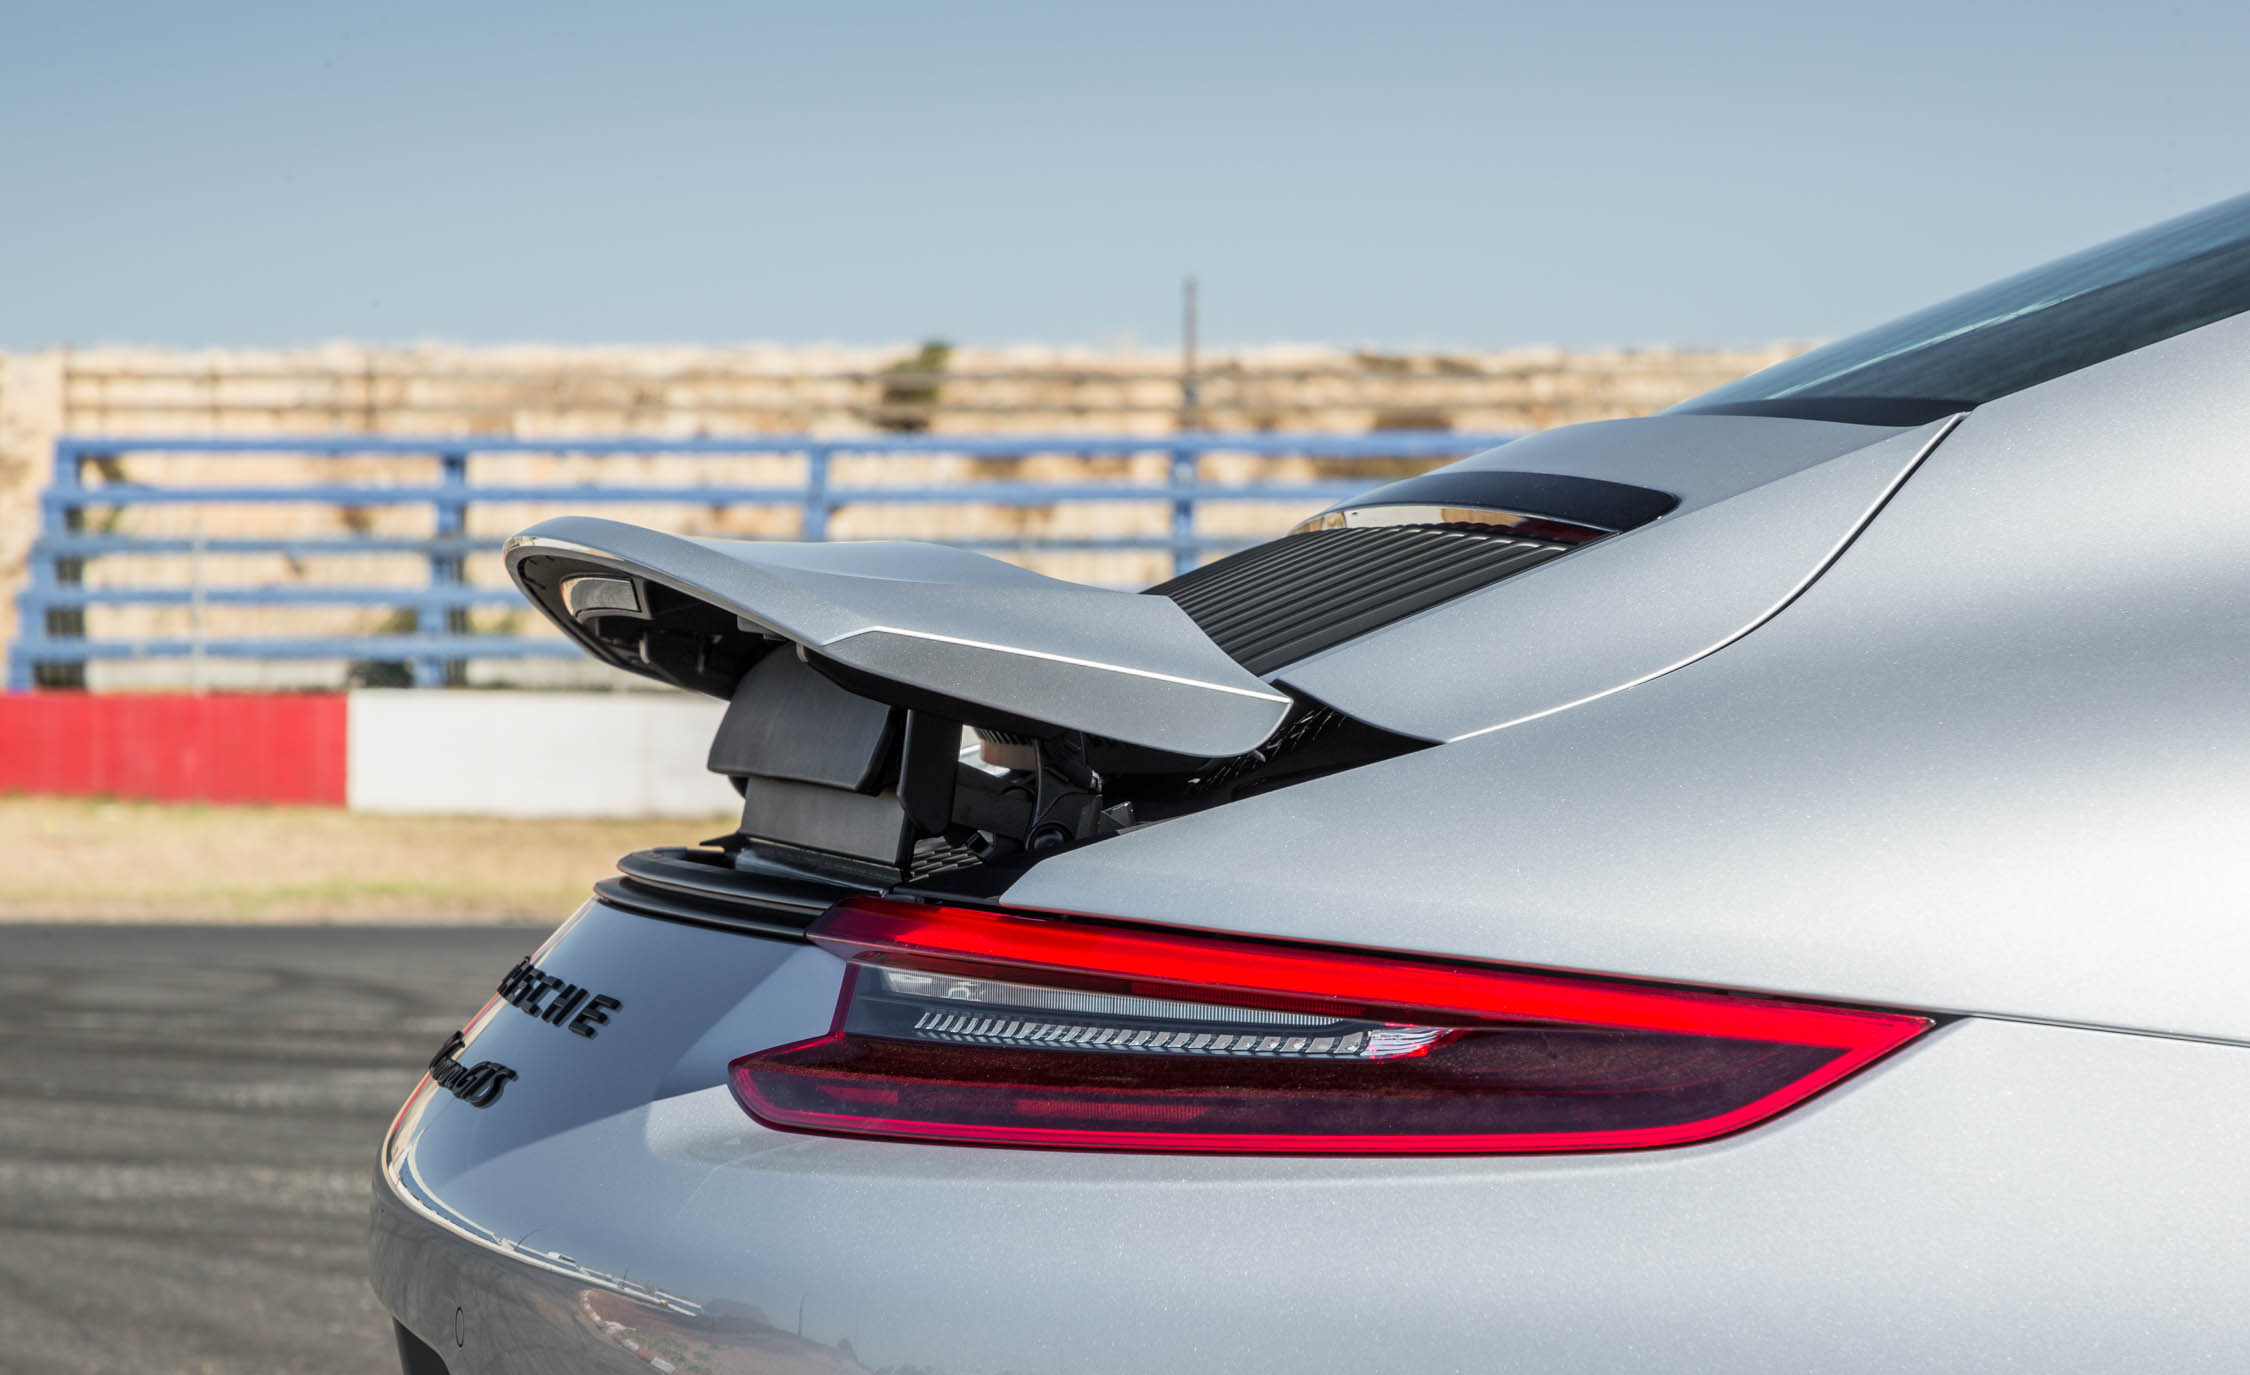 2017 Porsche 911 Carrera GTS Coupe Exterior View Rear Spoiler Wing (Photo 46 of 97)